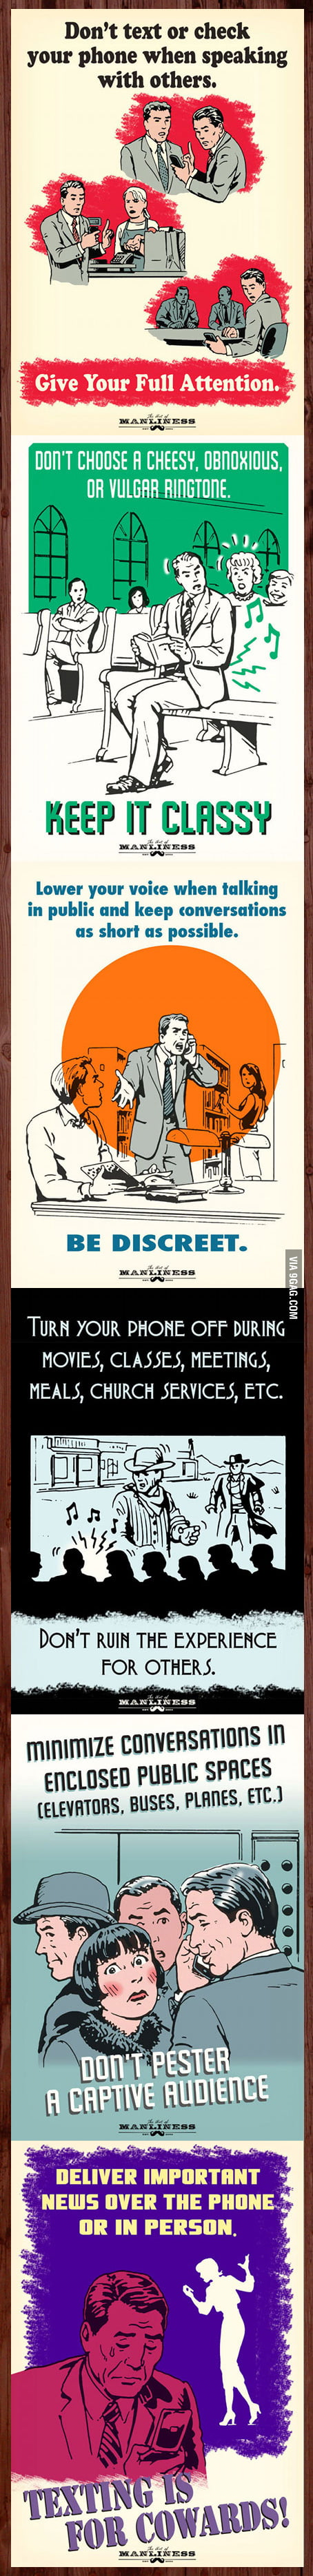 The Primer of Smartphone Etiquette